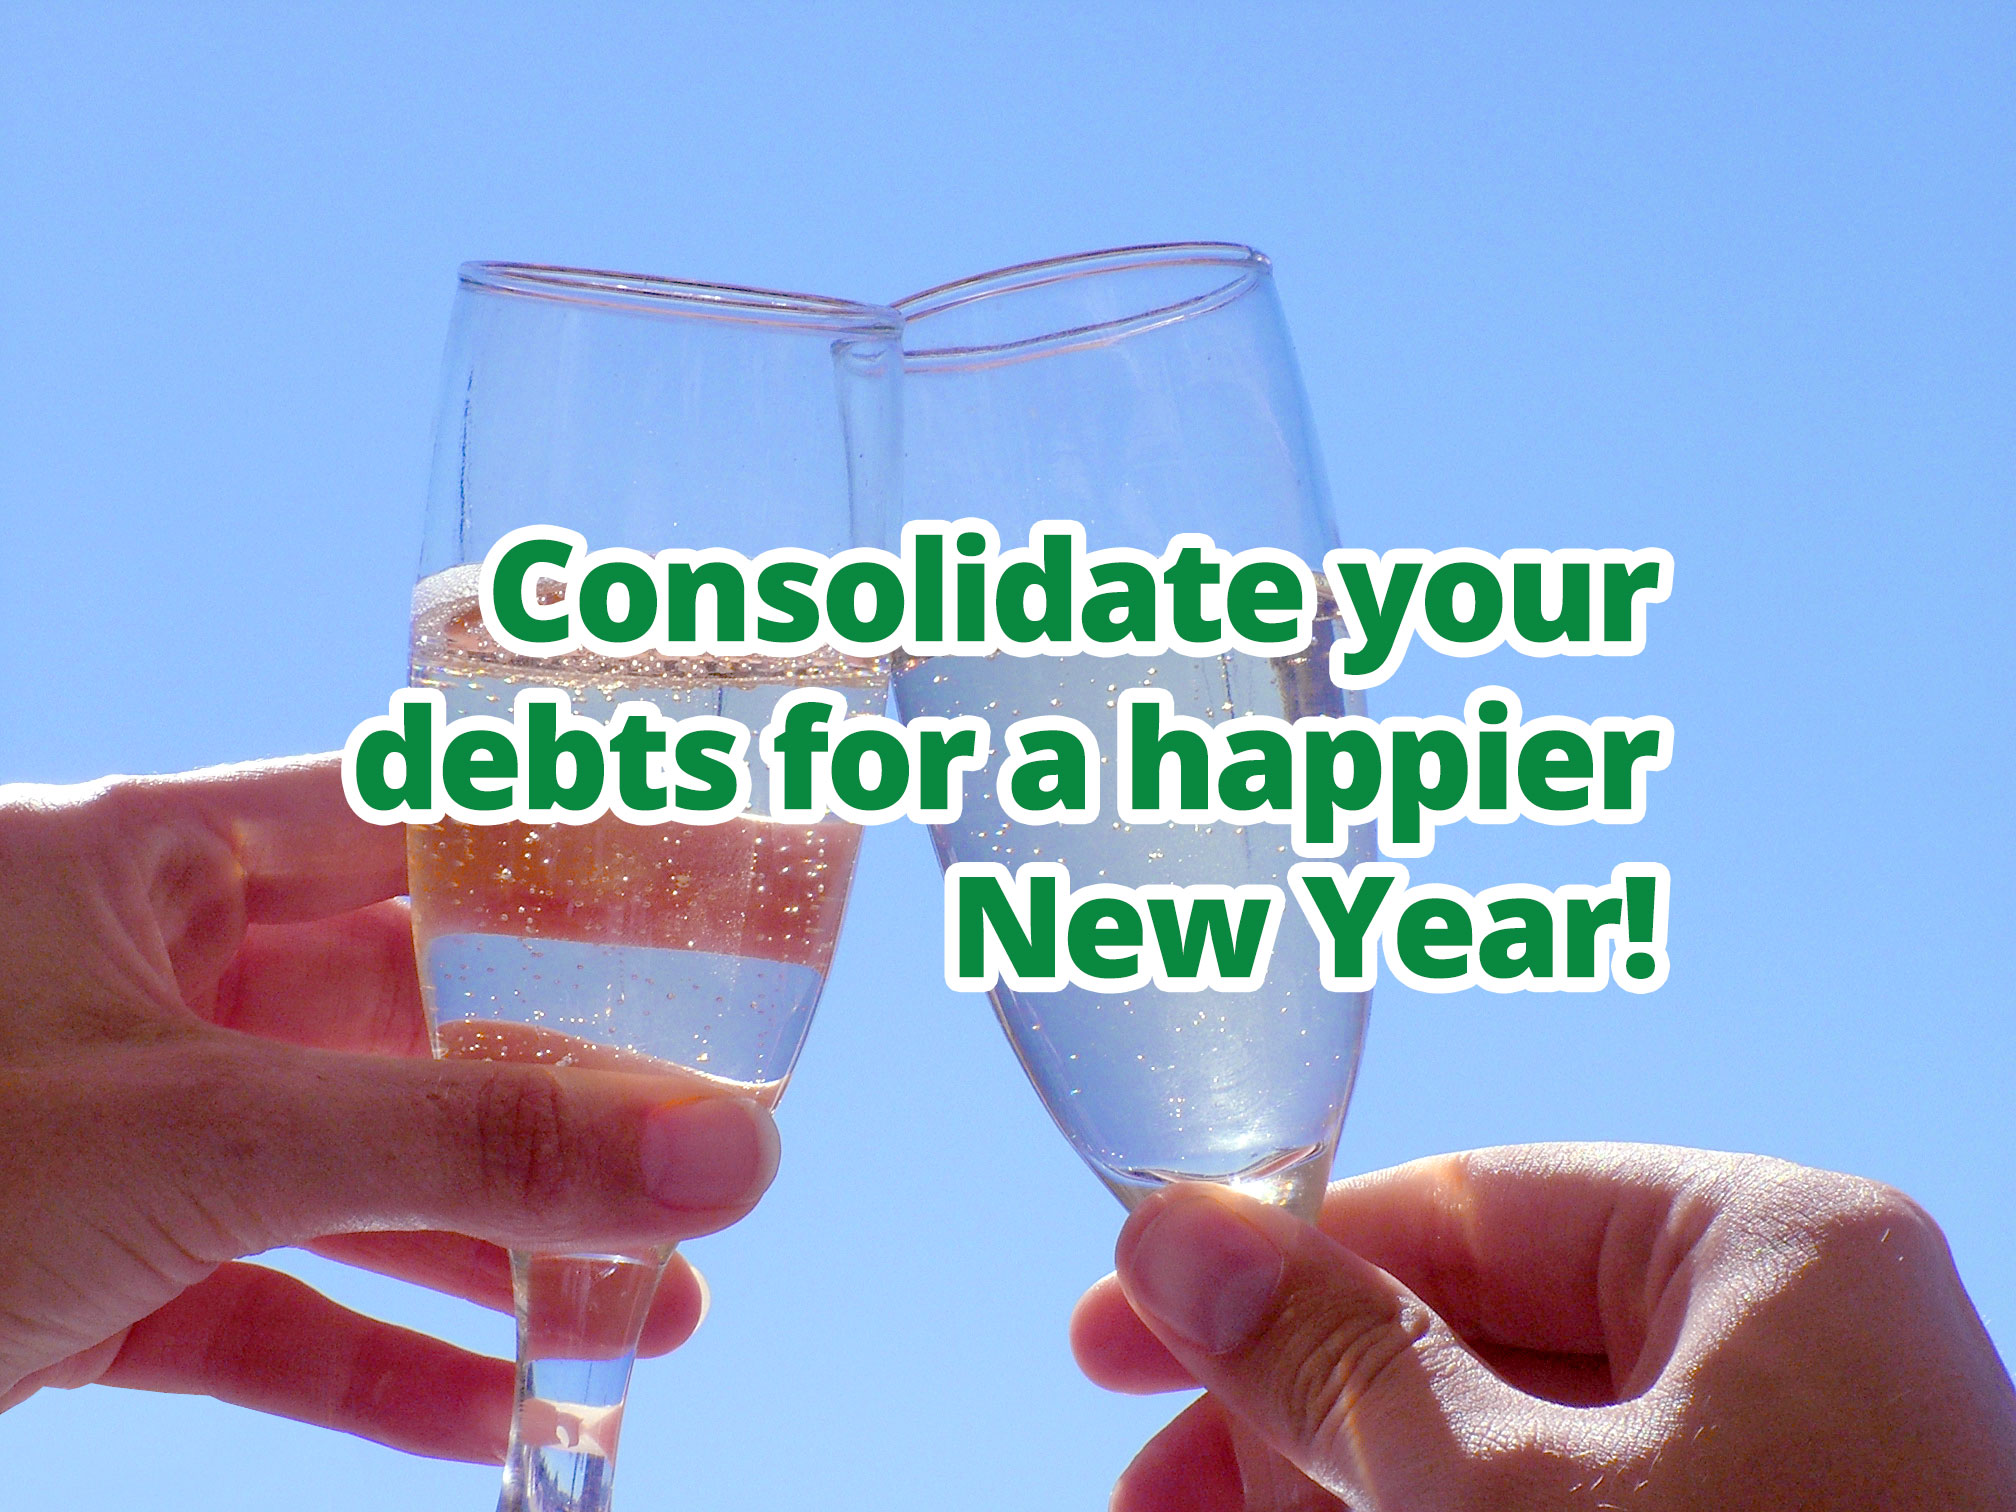 Consolidate your debts for a happier New Year!